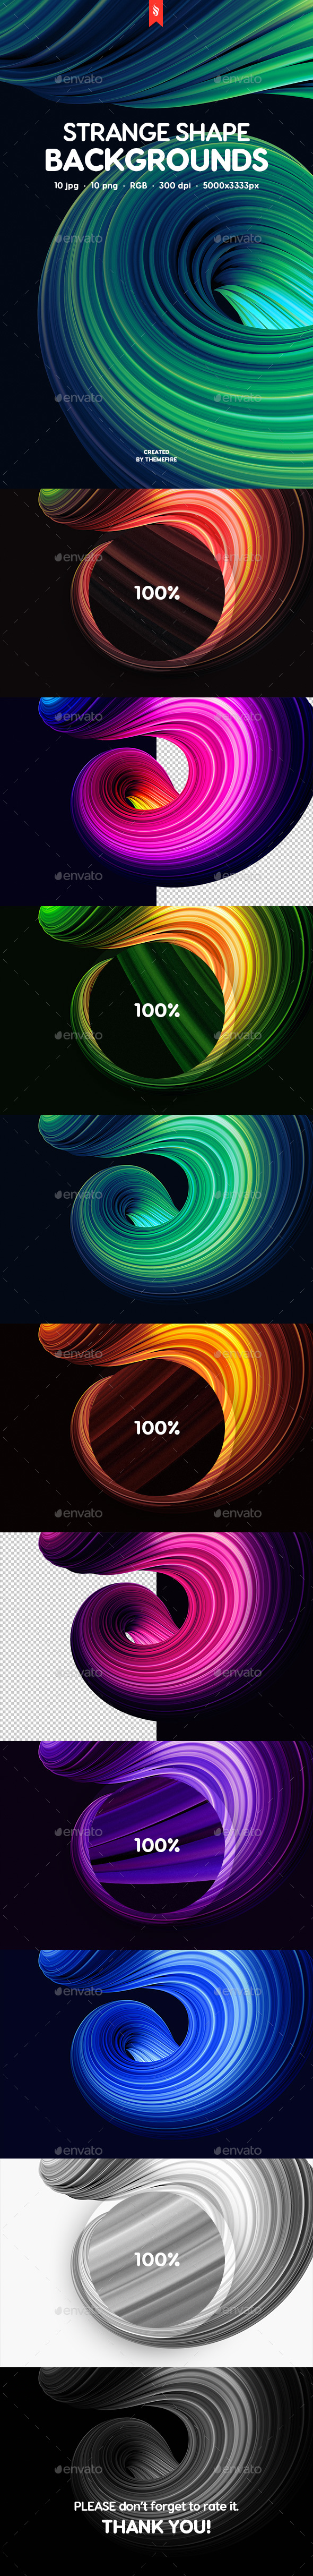 20 Abstract Strange Shape Backgrounds - Abstract Backgrounds